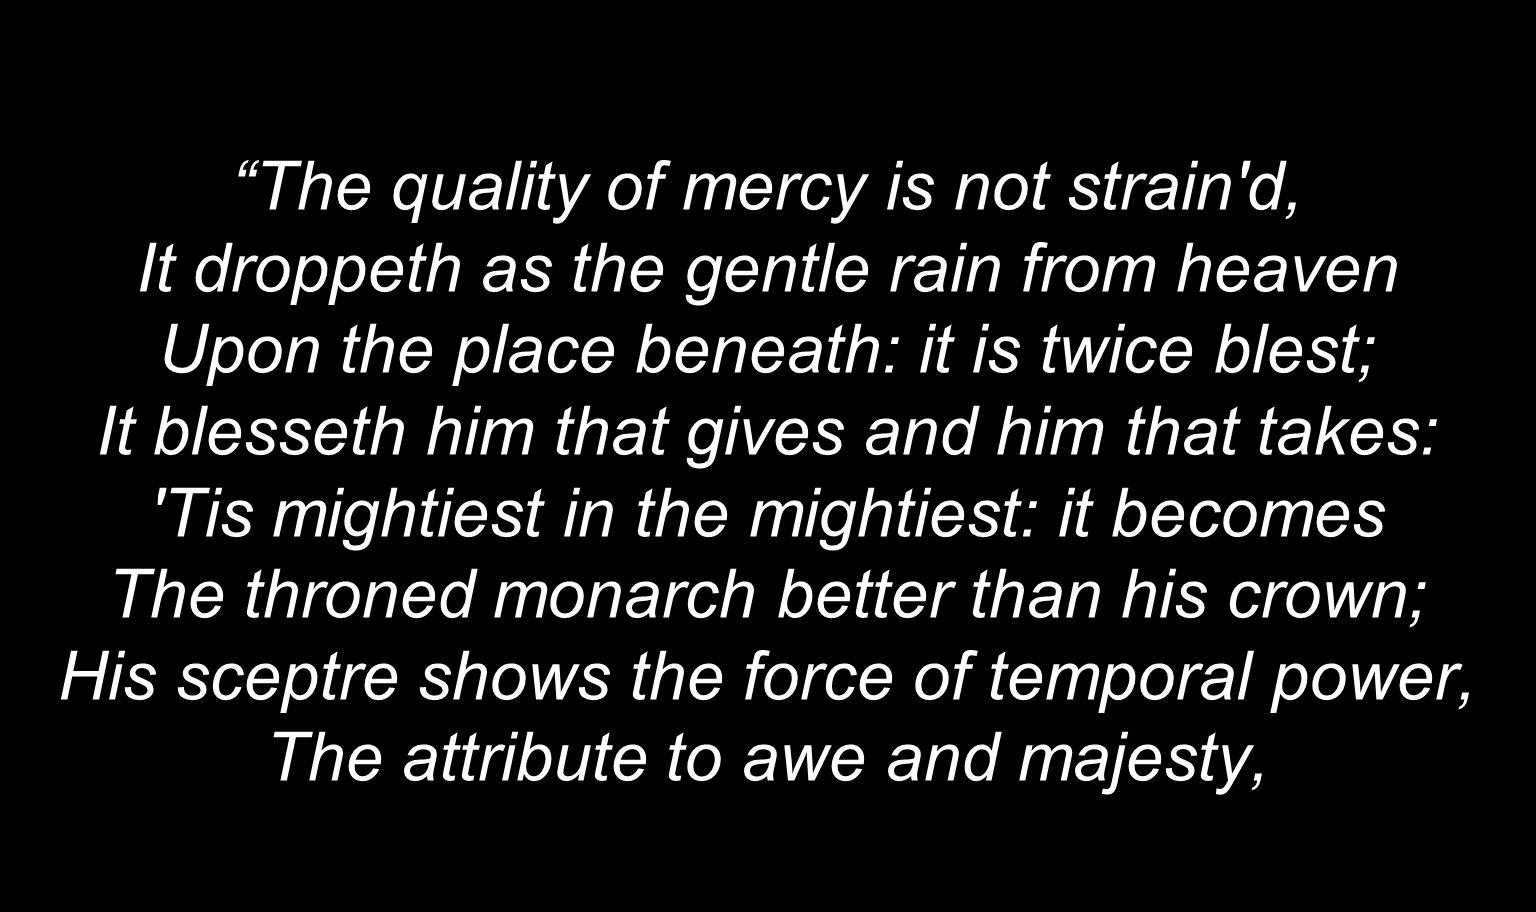 The quality of mercy is not strain d, It droppeth as the gentle rain from heaven Upon the place beneath: it is twice blest; It blesseth him that gives and him that takes: Tis mightiest in the mightiest: it becomes The throned monarch better than his crown; His sceptre shows the force of temporal power, The attribute to awe and majesty,